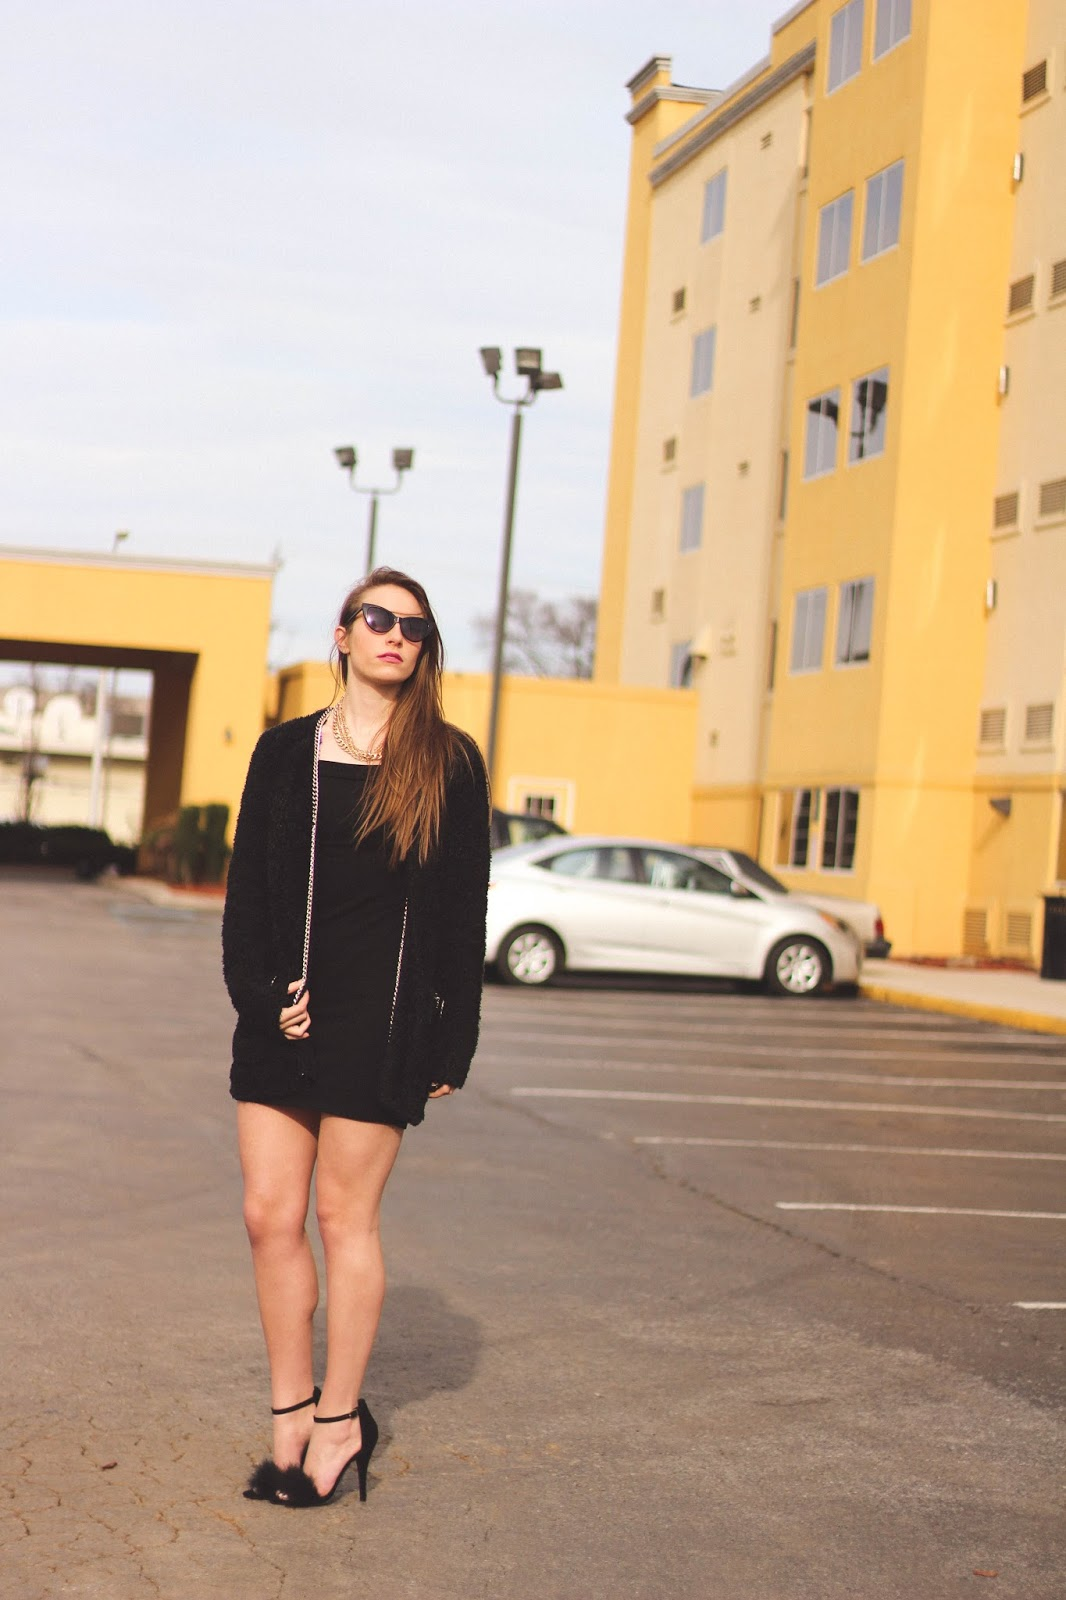 Retro Black and Gold Outfit, Black Off the Shoulder Dress, Lana del Rey Style, Californication, Fashion Blogger